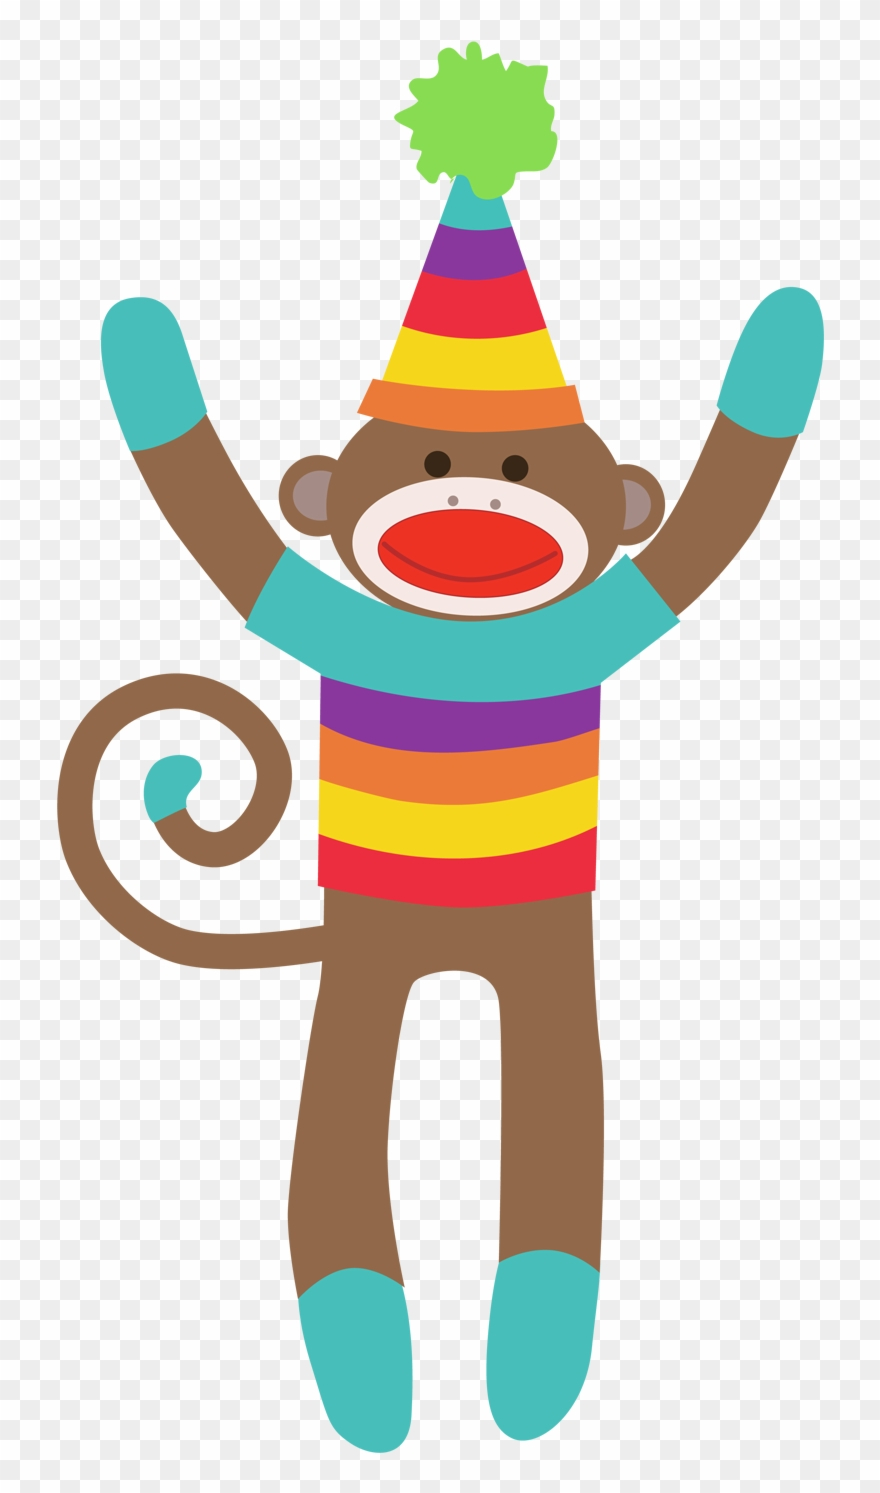 Sock Monkey Clipart Free Download Clip Art On - Colorful Sock Monkey - Free Printable Sock Monkey Clip Art